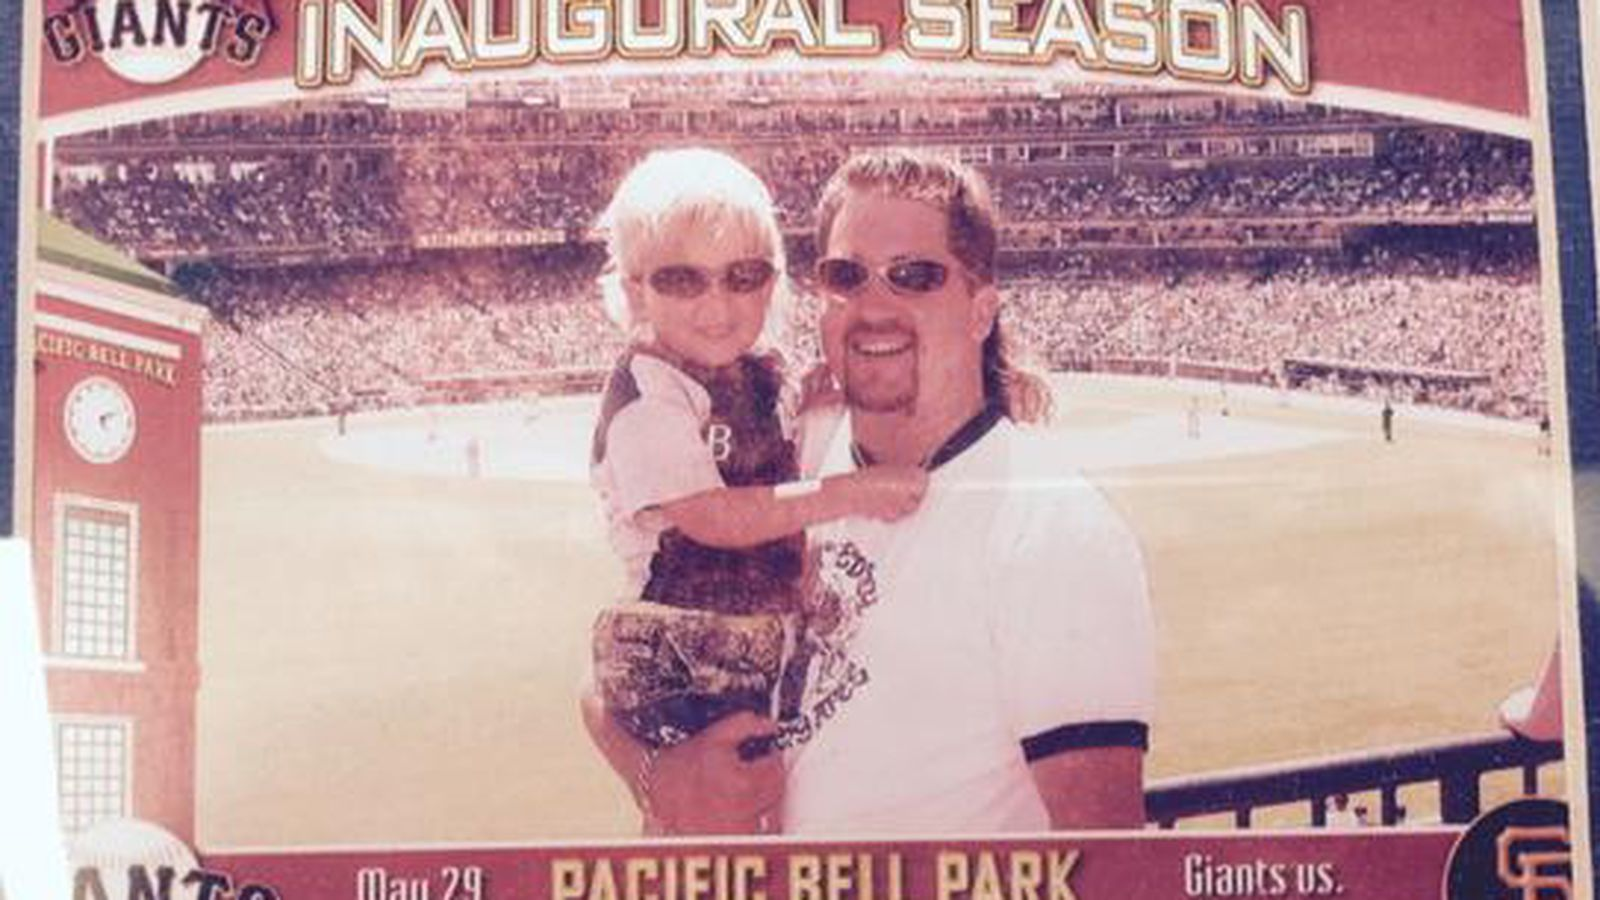 Guy Fieri had a transcendent, unbleached mullet in 2000